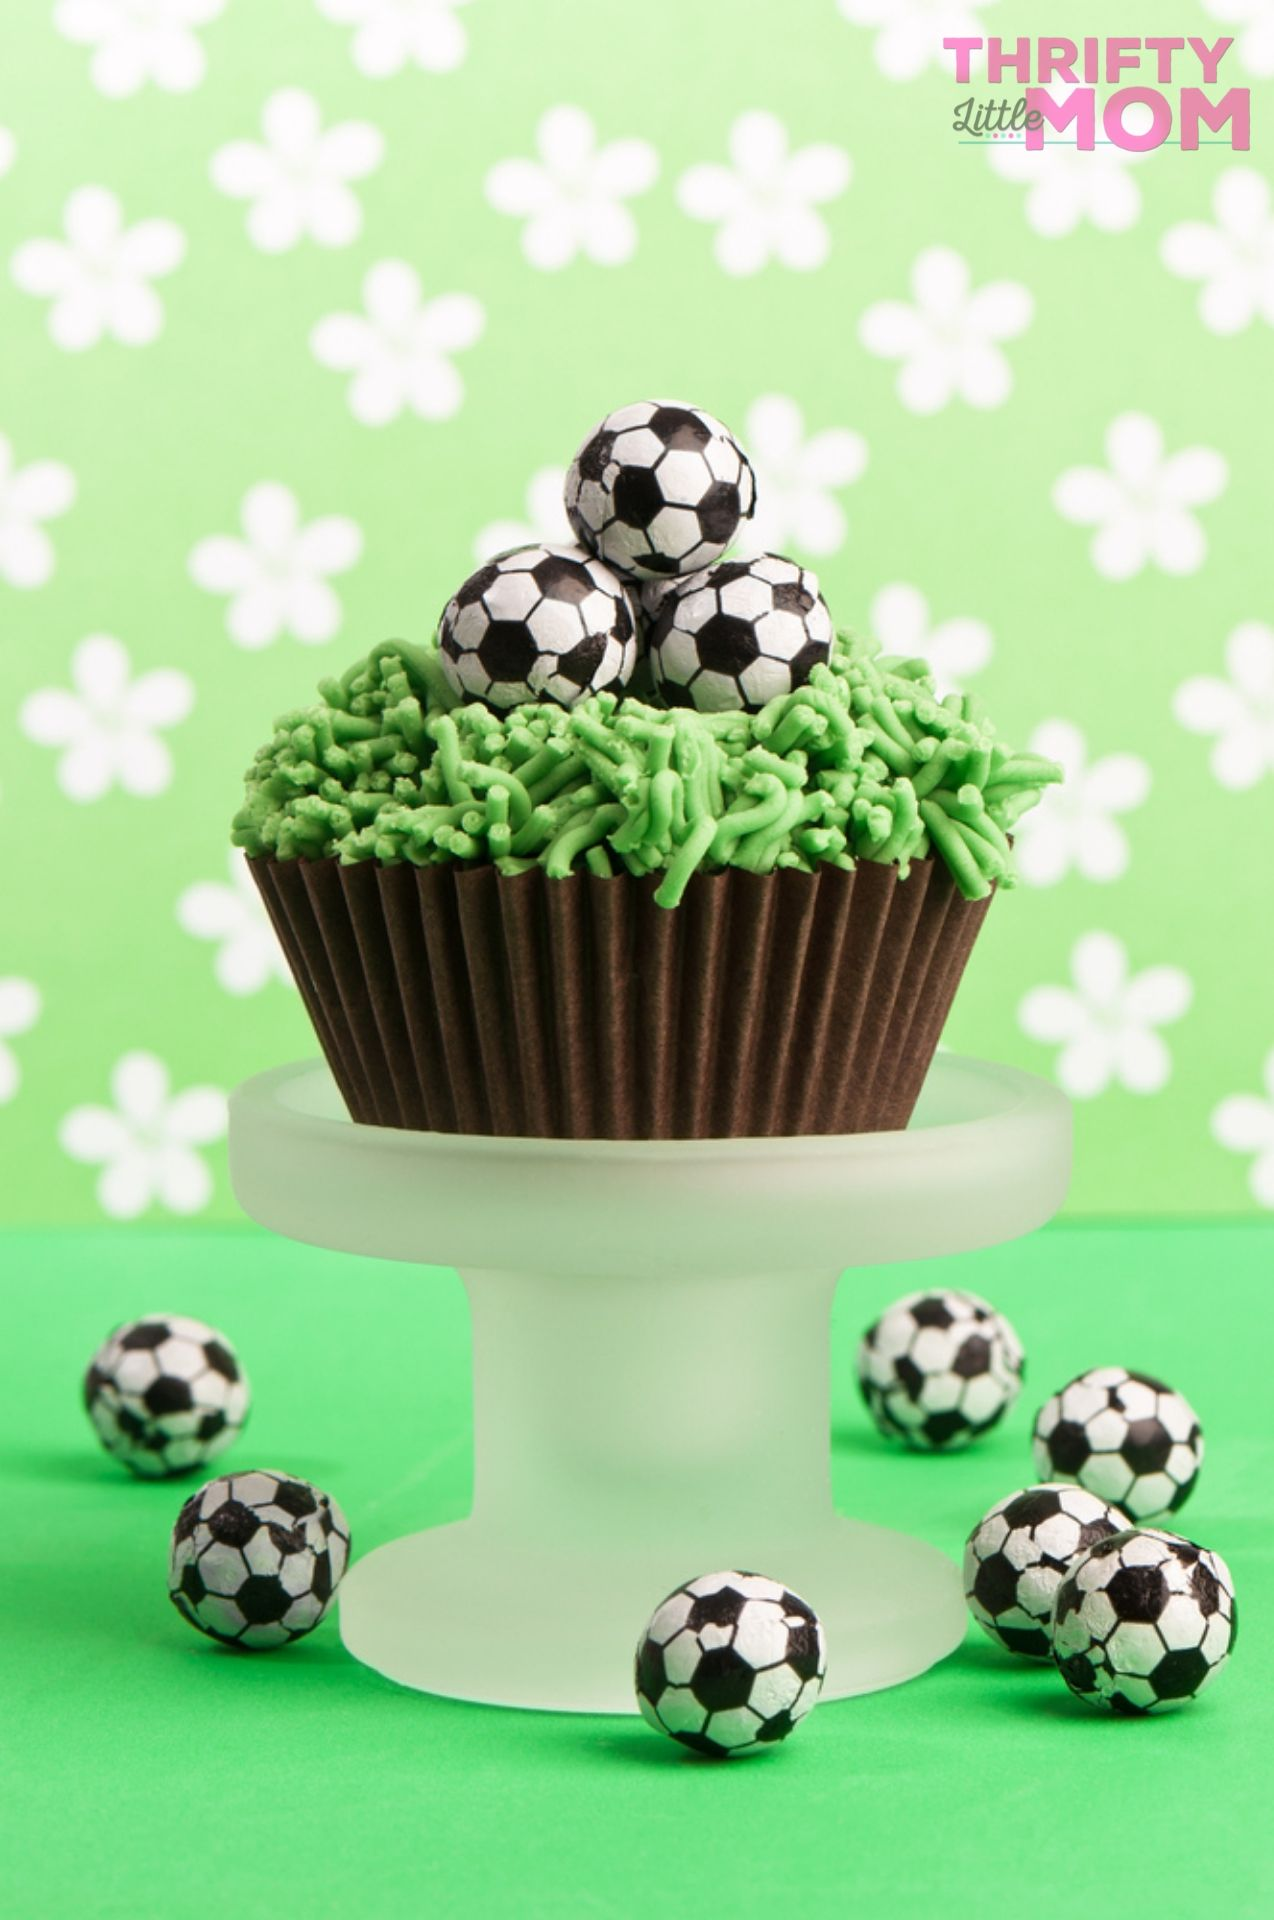 chocolate cupcake with grass and soccer ball decorations